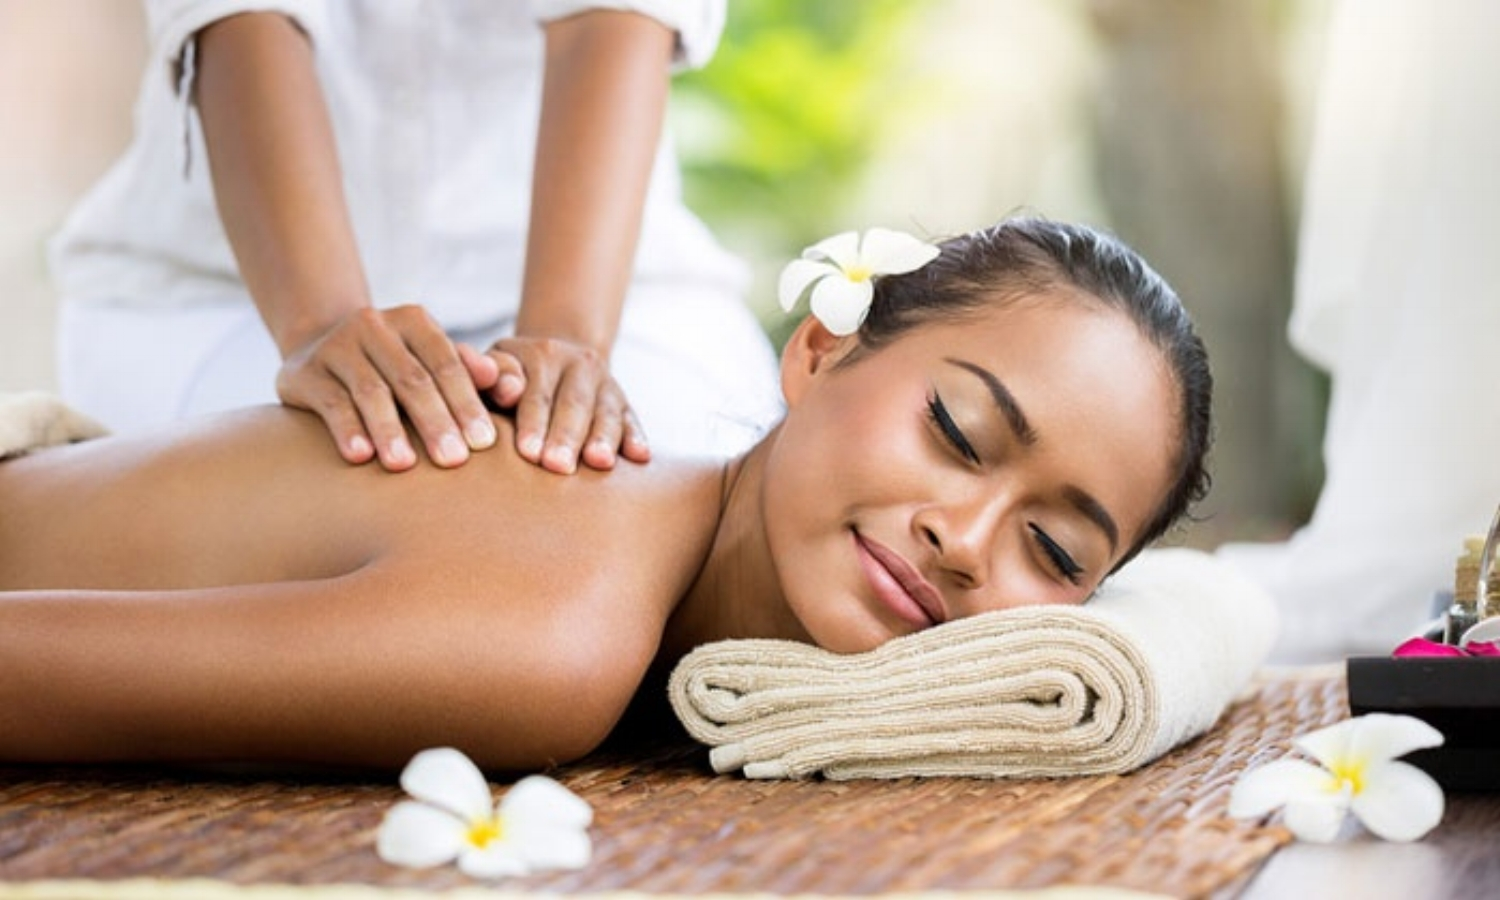 Finding a great Massage Therapist to provide deep tissue therapy is one of the best ways to stay healthy and improve your energy level.